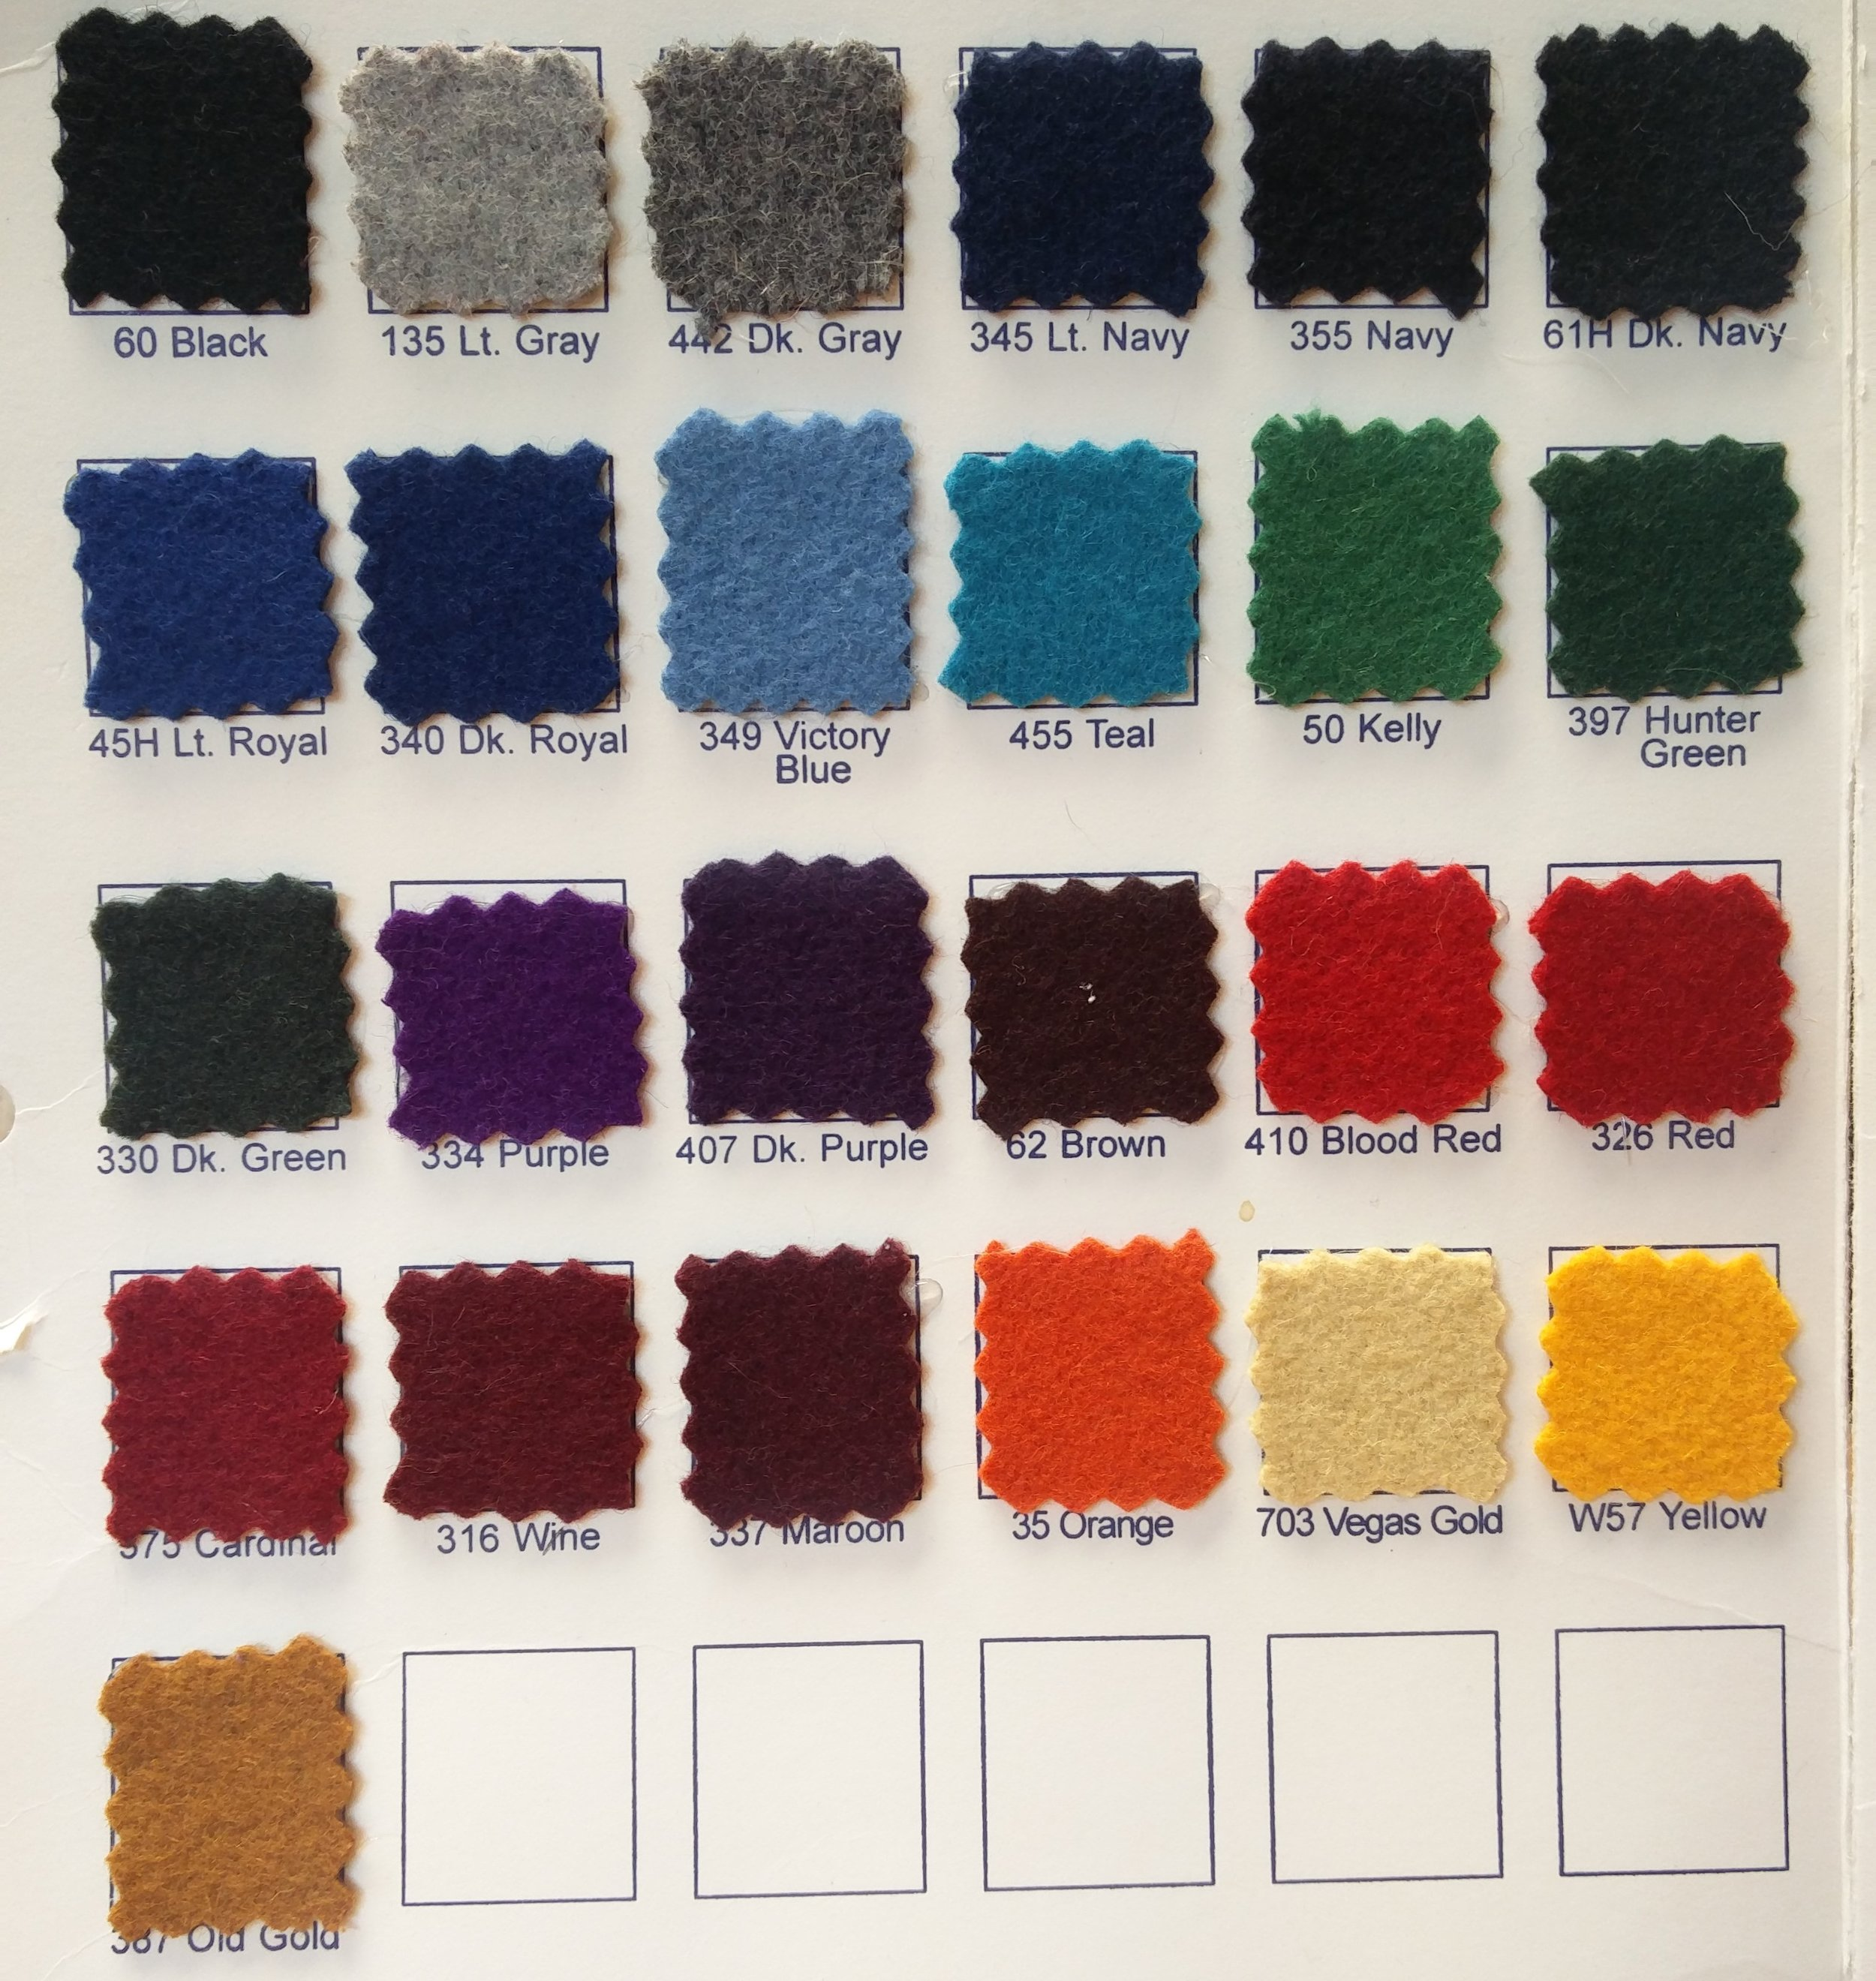 Wool Color Options - 24 oz. Melton Wool